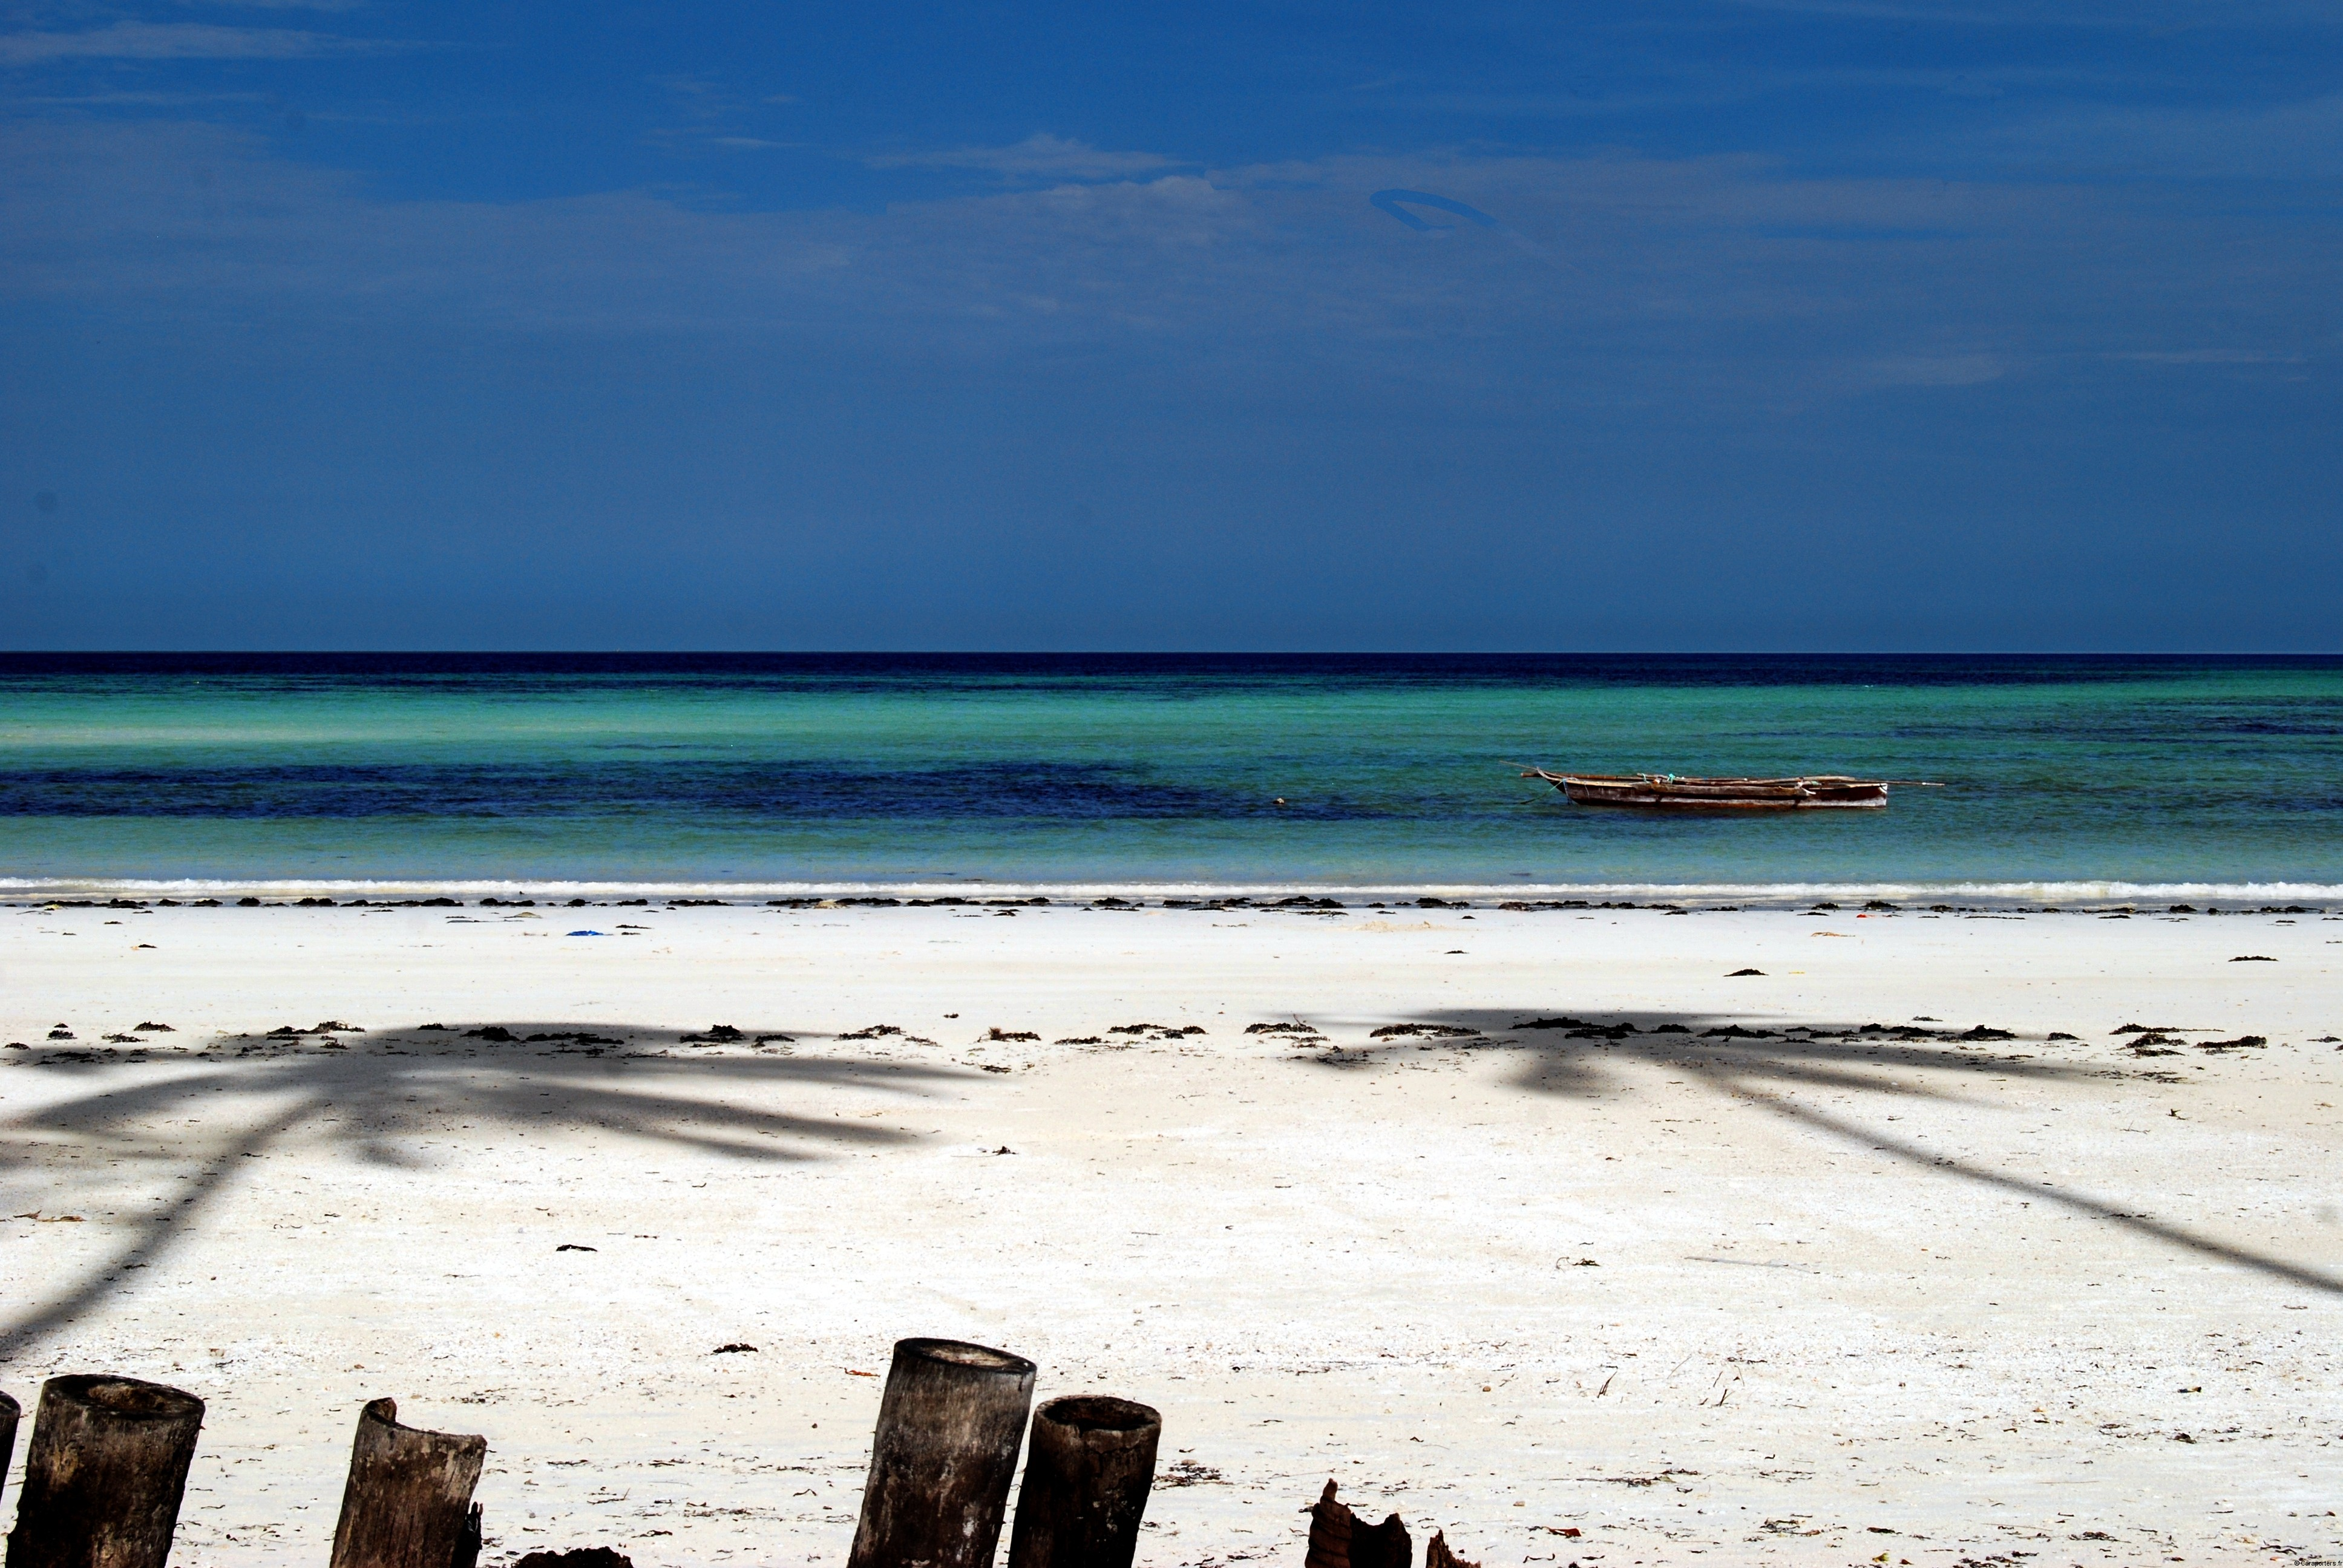 Les Massaï s'occidentalisent à Zanzibar